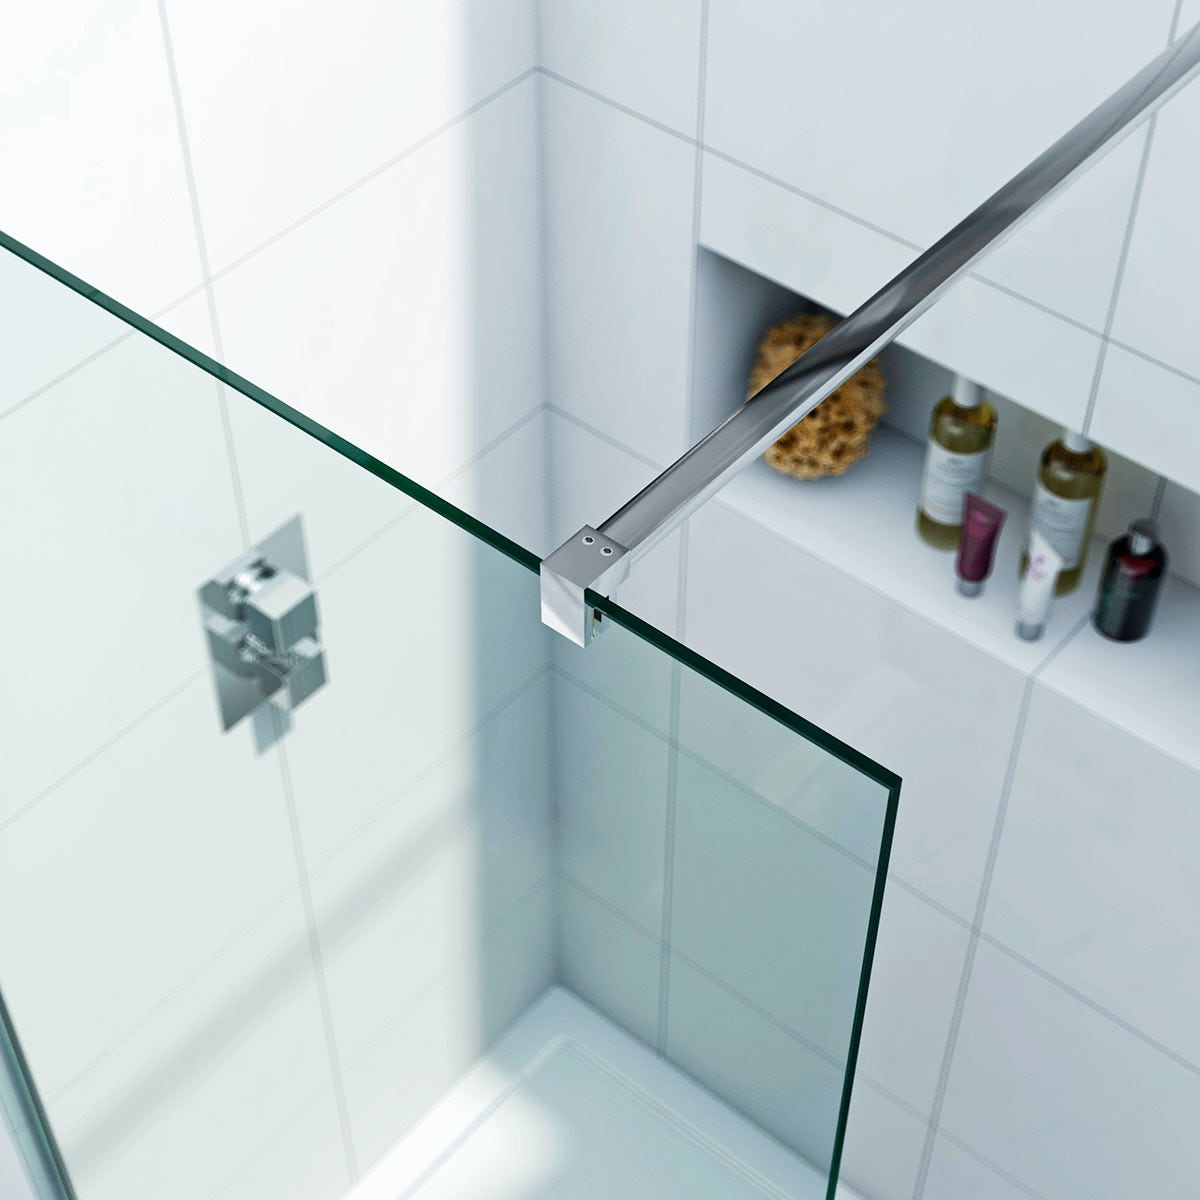 Mode luxury 8mm walk in shower glass panel with tray for 1200 shower door 8mm glass